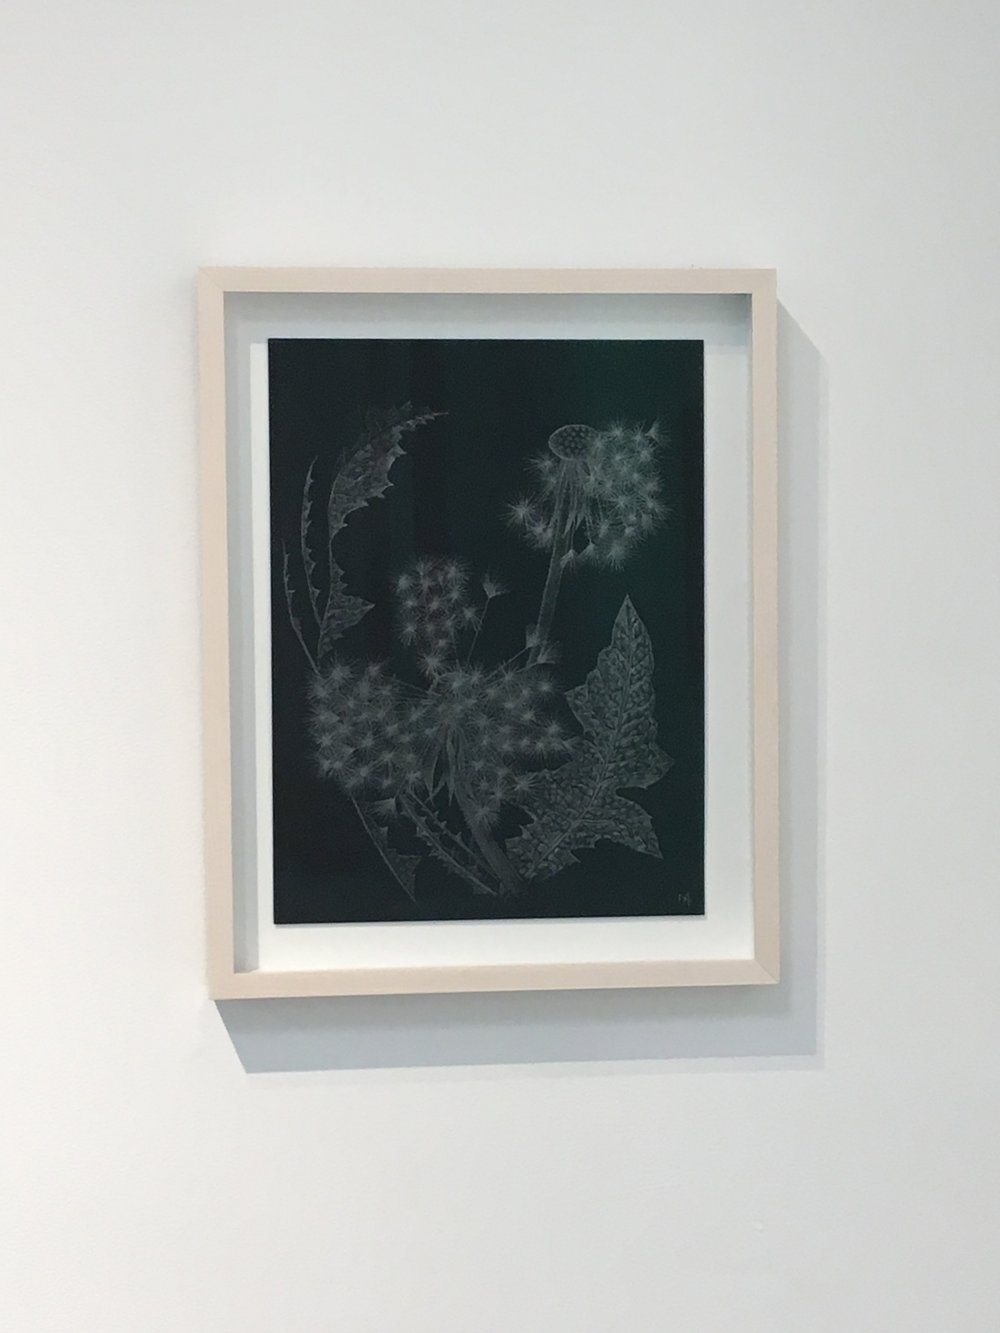 Shouting Flower   goldpoint and graphite drawings by Margot Glass  September 14, 2018 - October 27, 2018